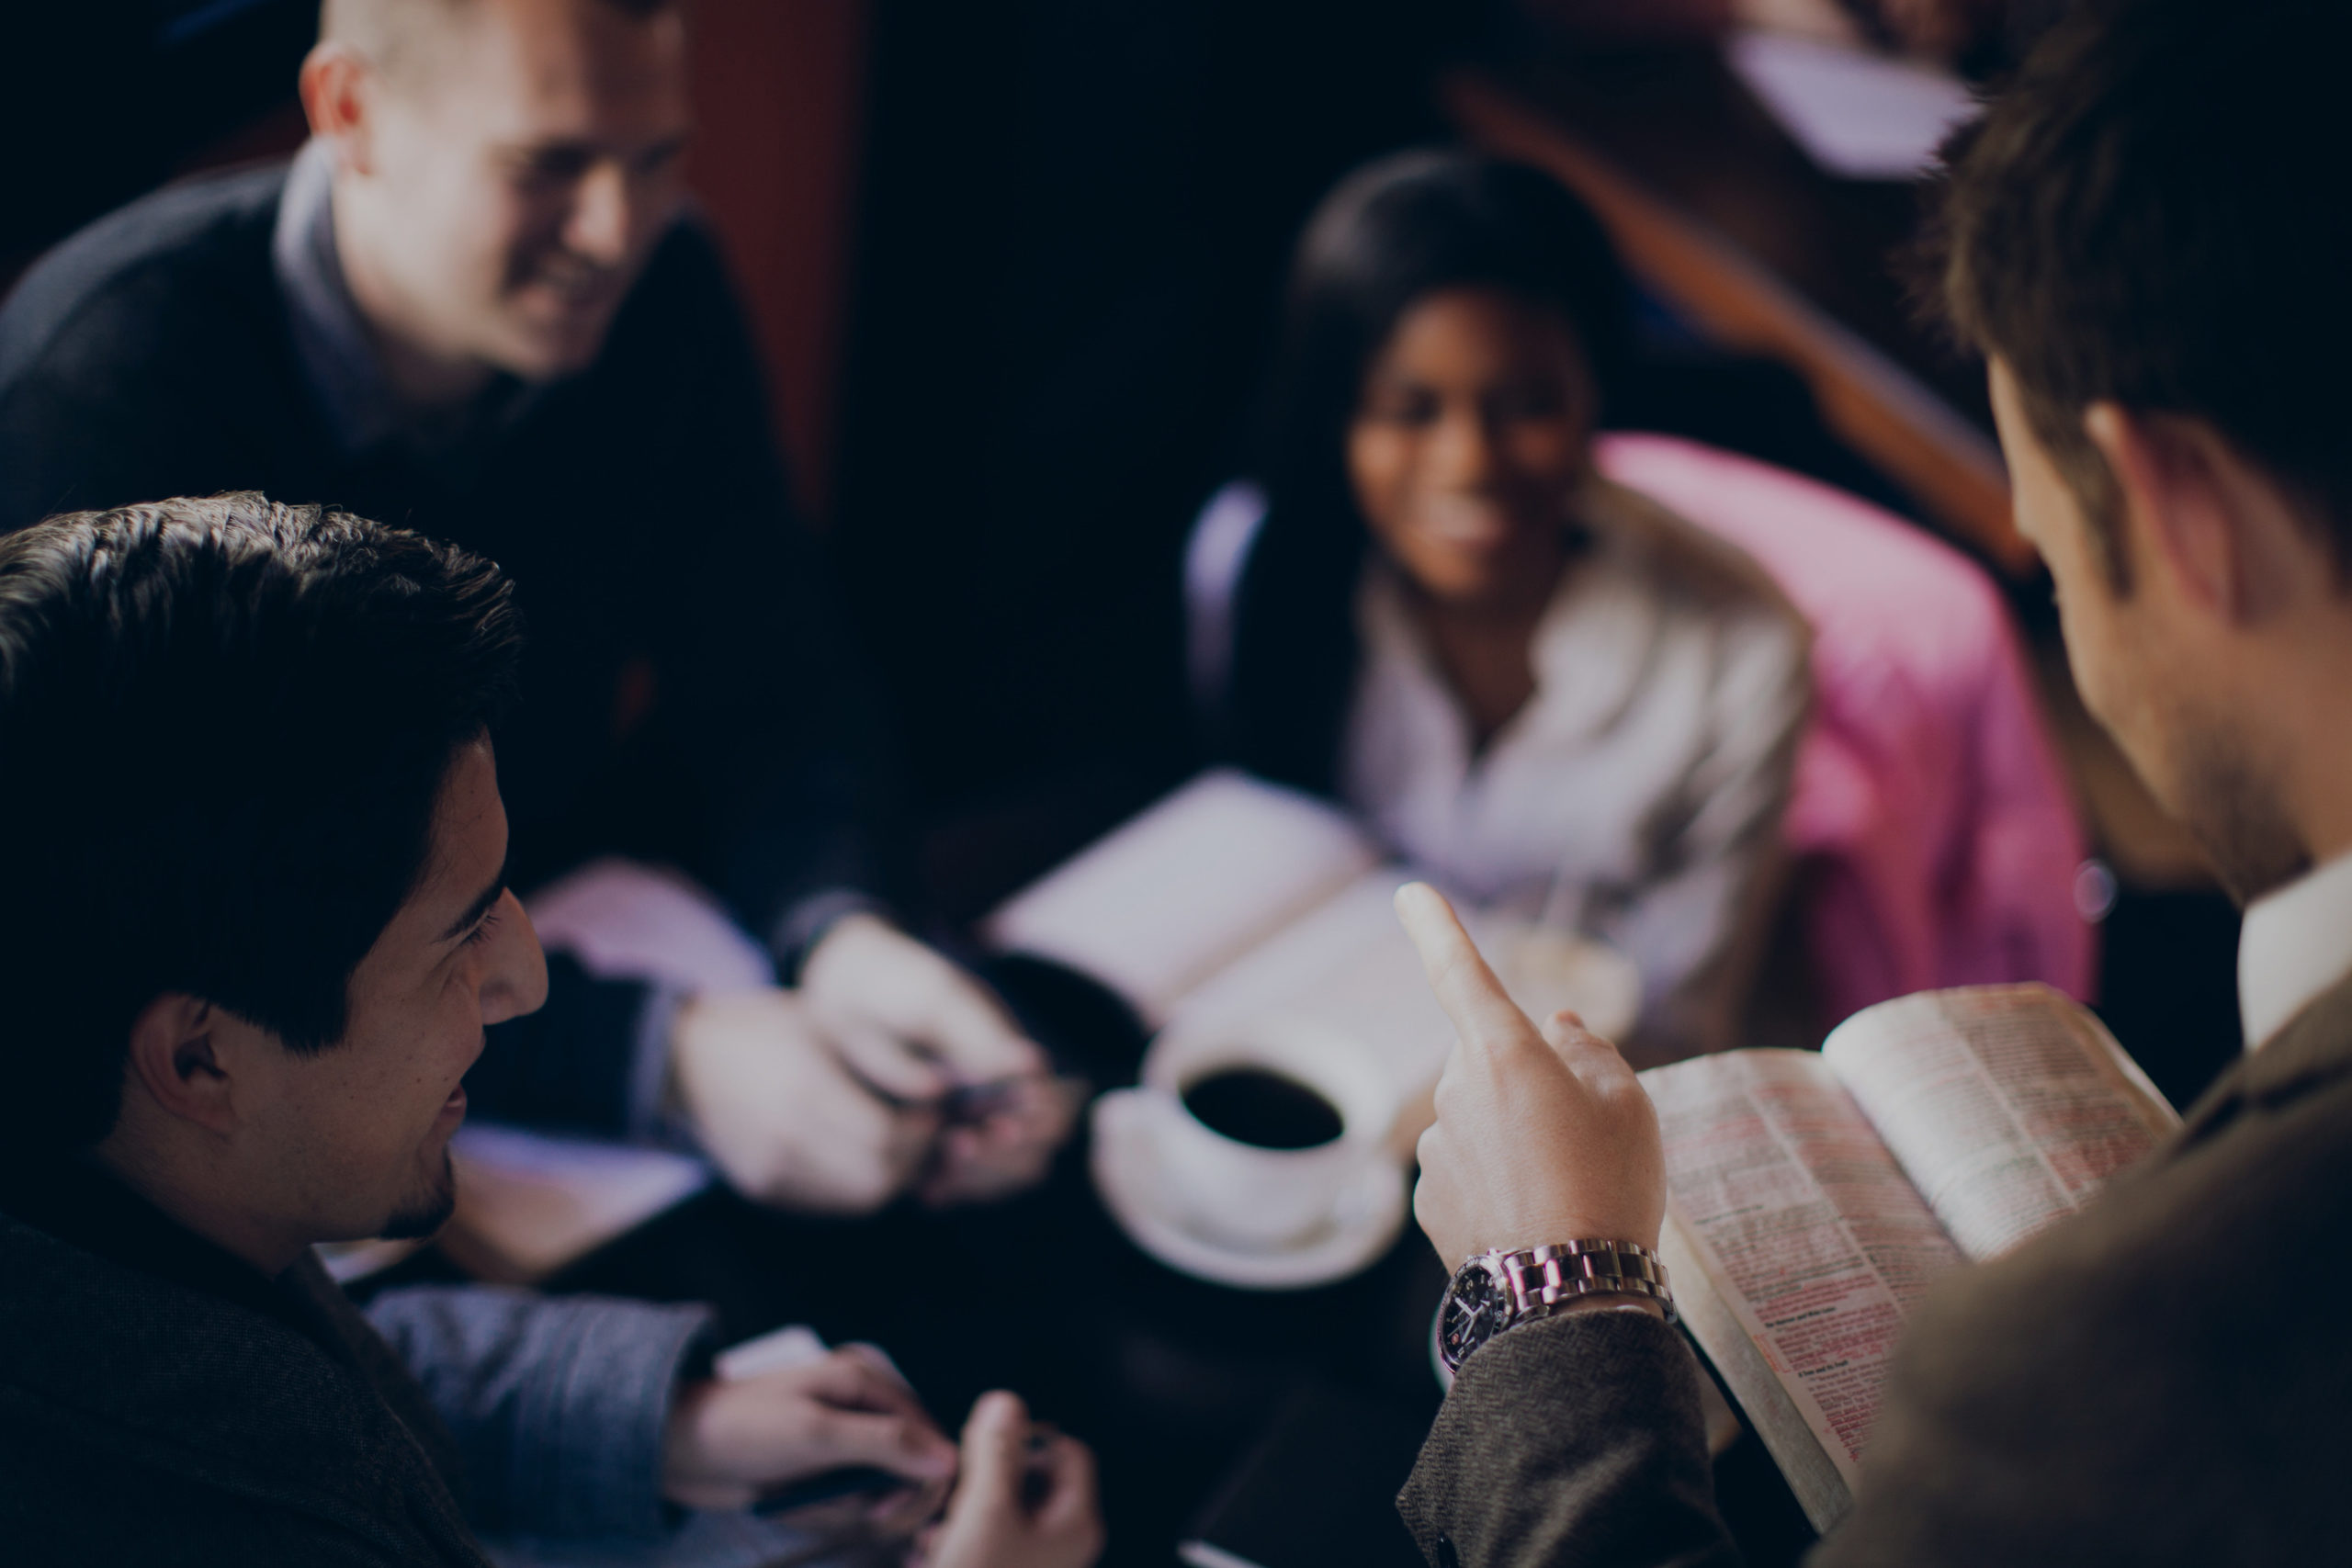 Get connected at a Life Group